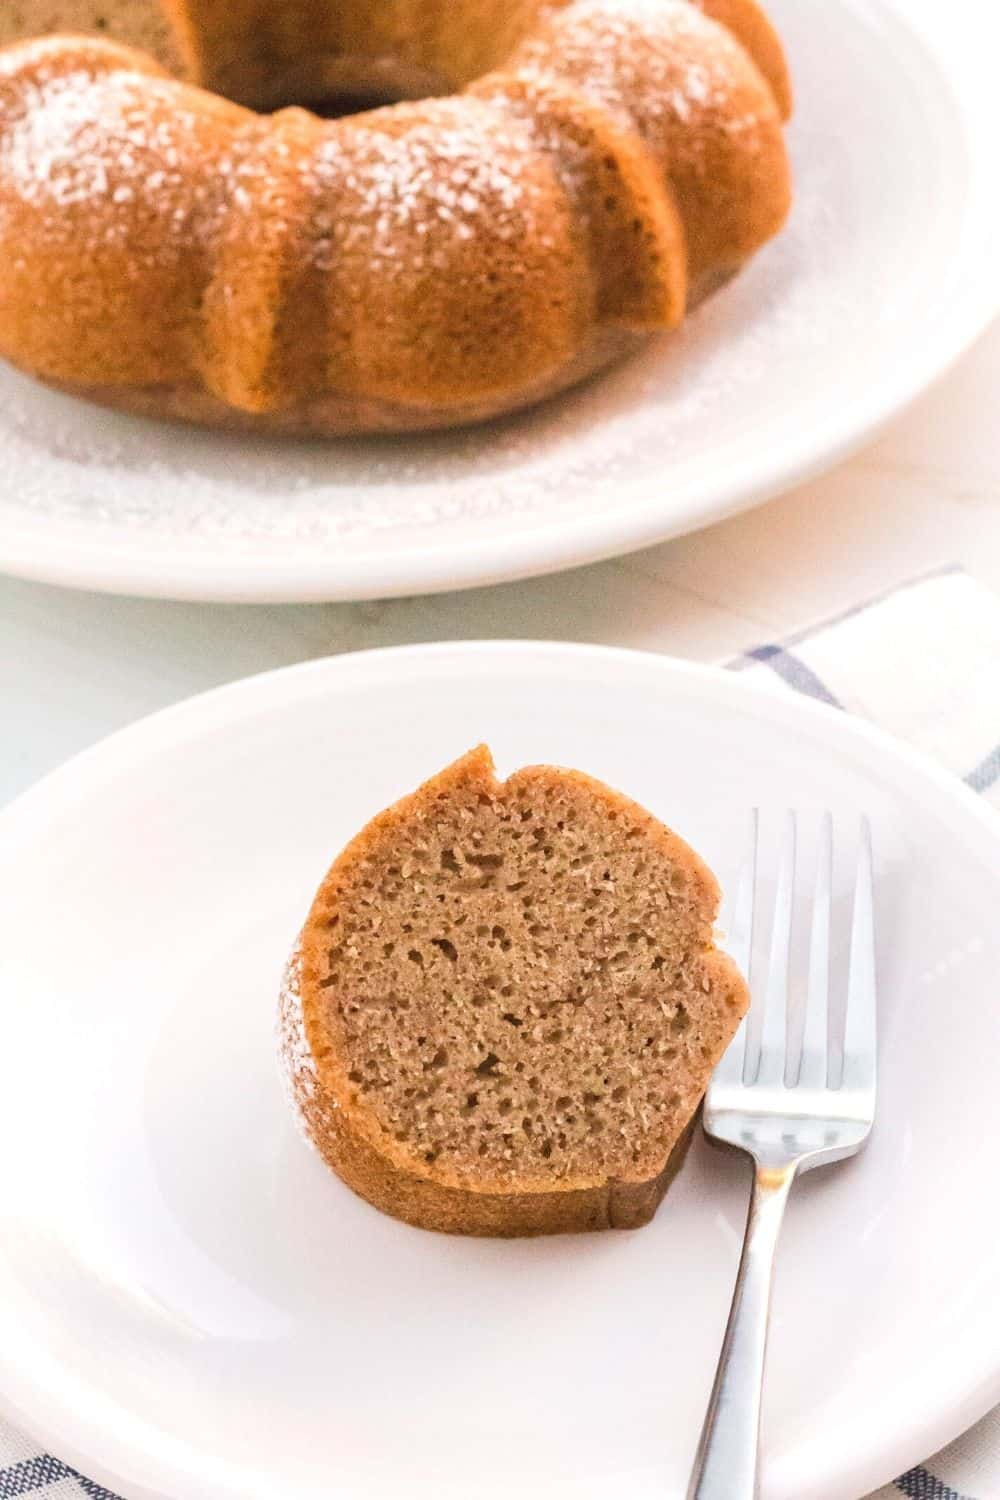 Slice of Instant Pot applesauce bundt cake on a white plate with the remaining cake in the background